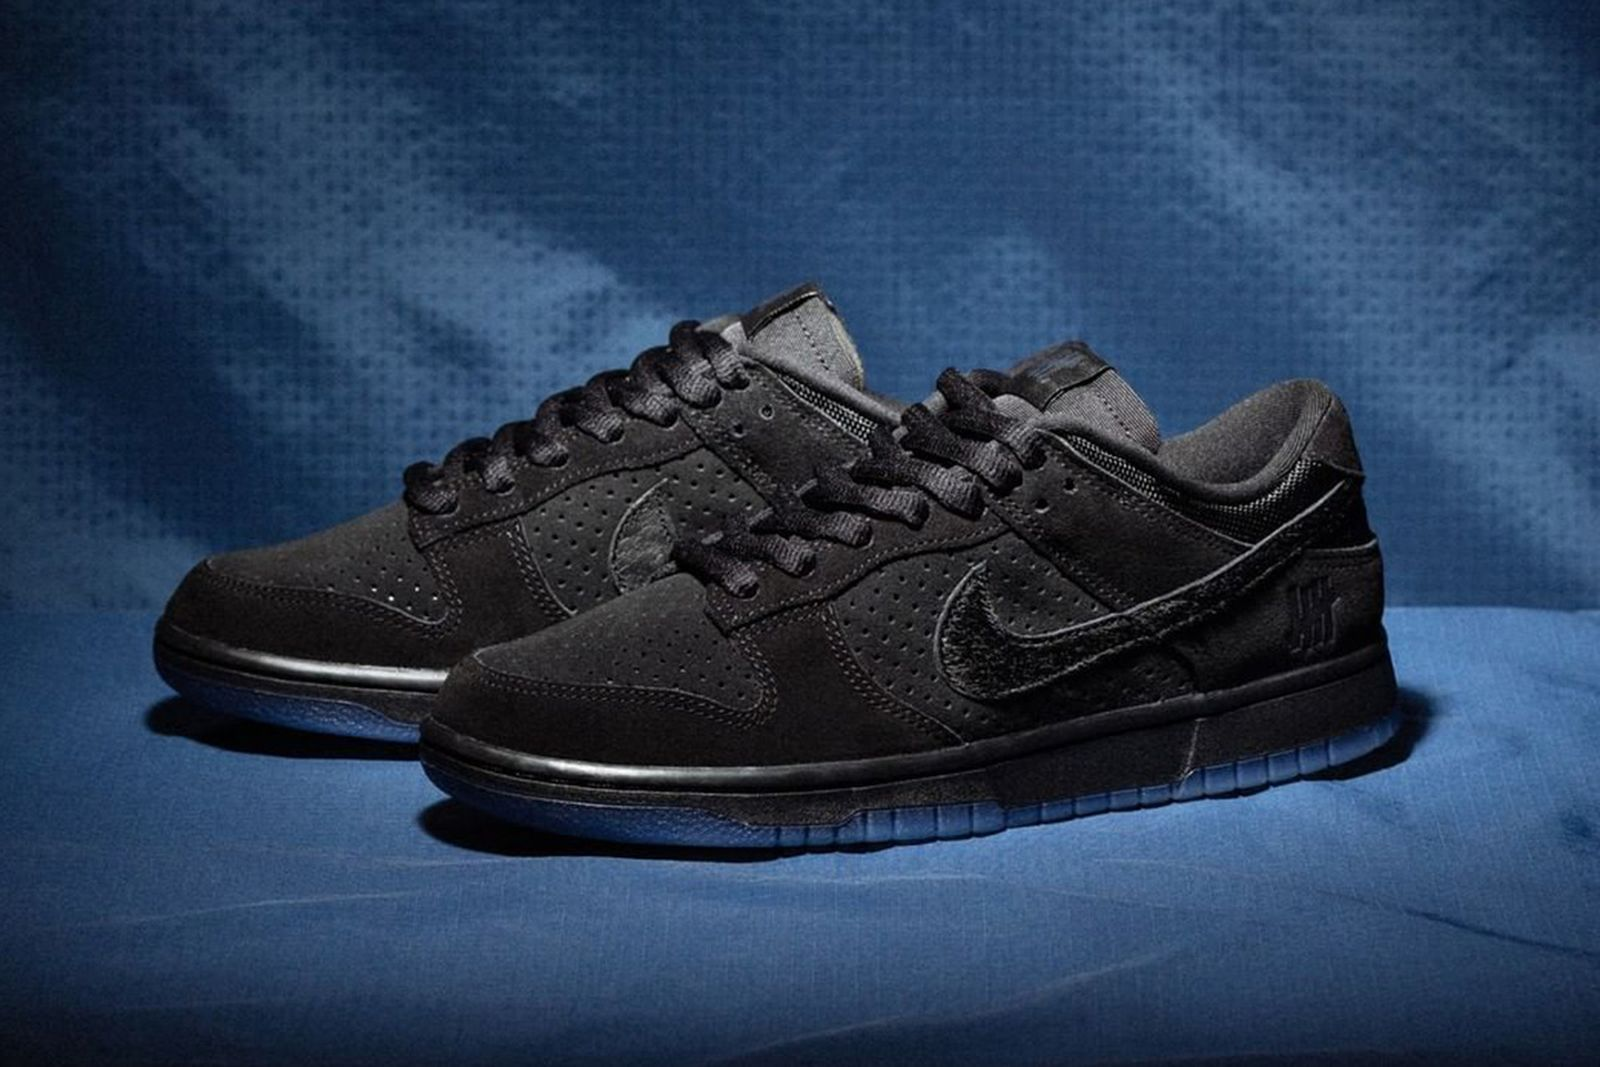 undefeated-nike-air-force-1-low-ballistic-release-date-price-03